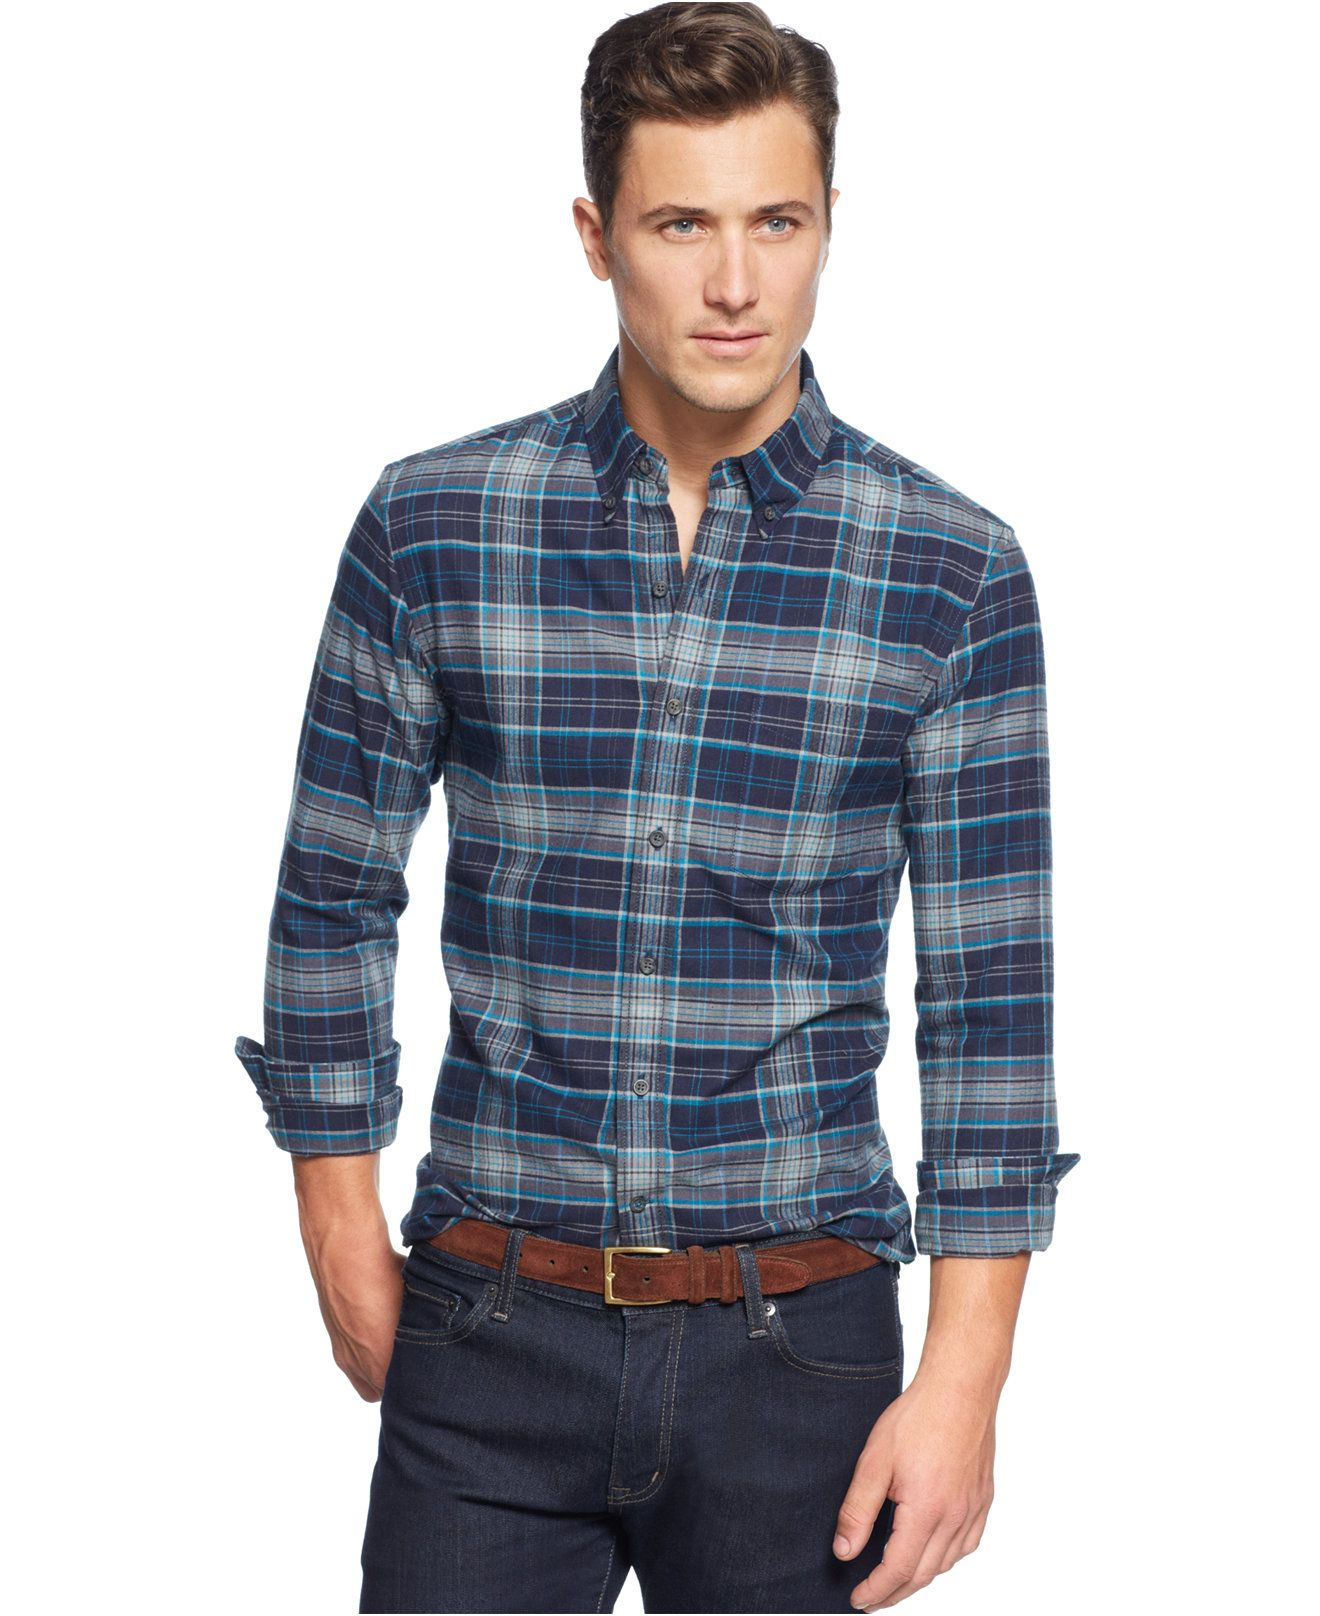 54a3bd9c2689d Club Room Slim-Fit Plaid Flannel Shirt - Men - Macy s